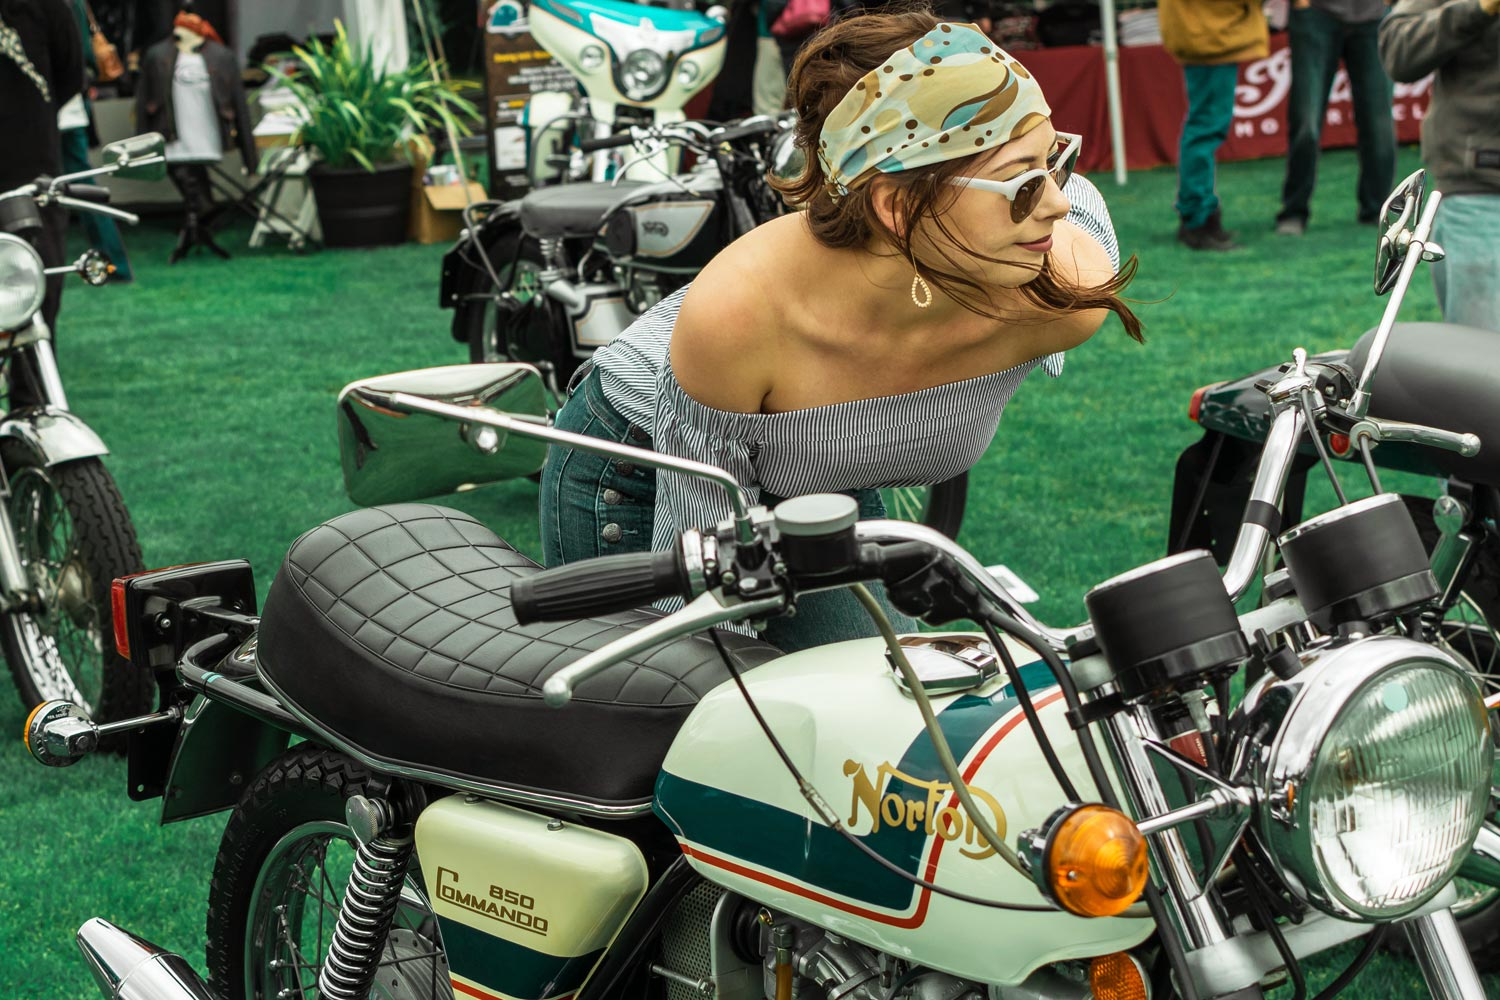 Quail Motorcycle Gathering Introduces New Classes & More for 2018 1